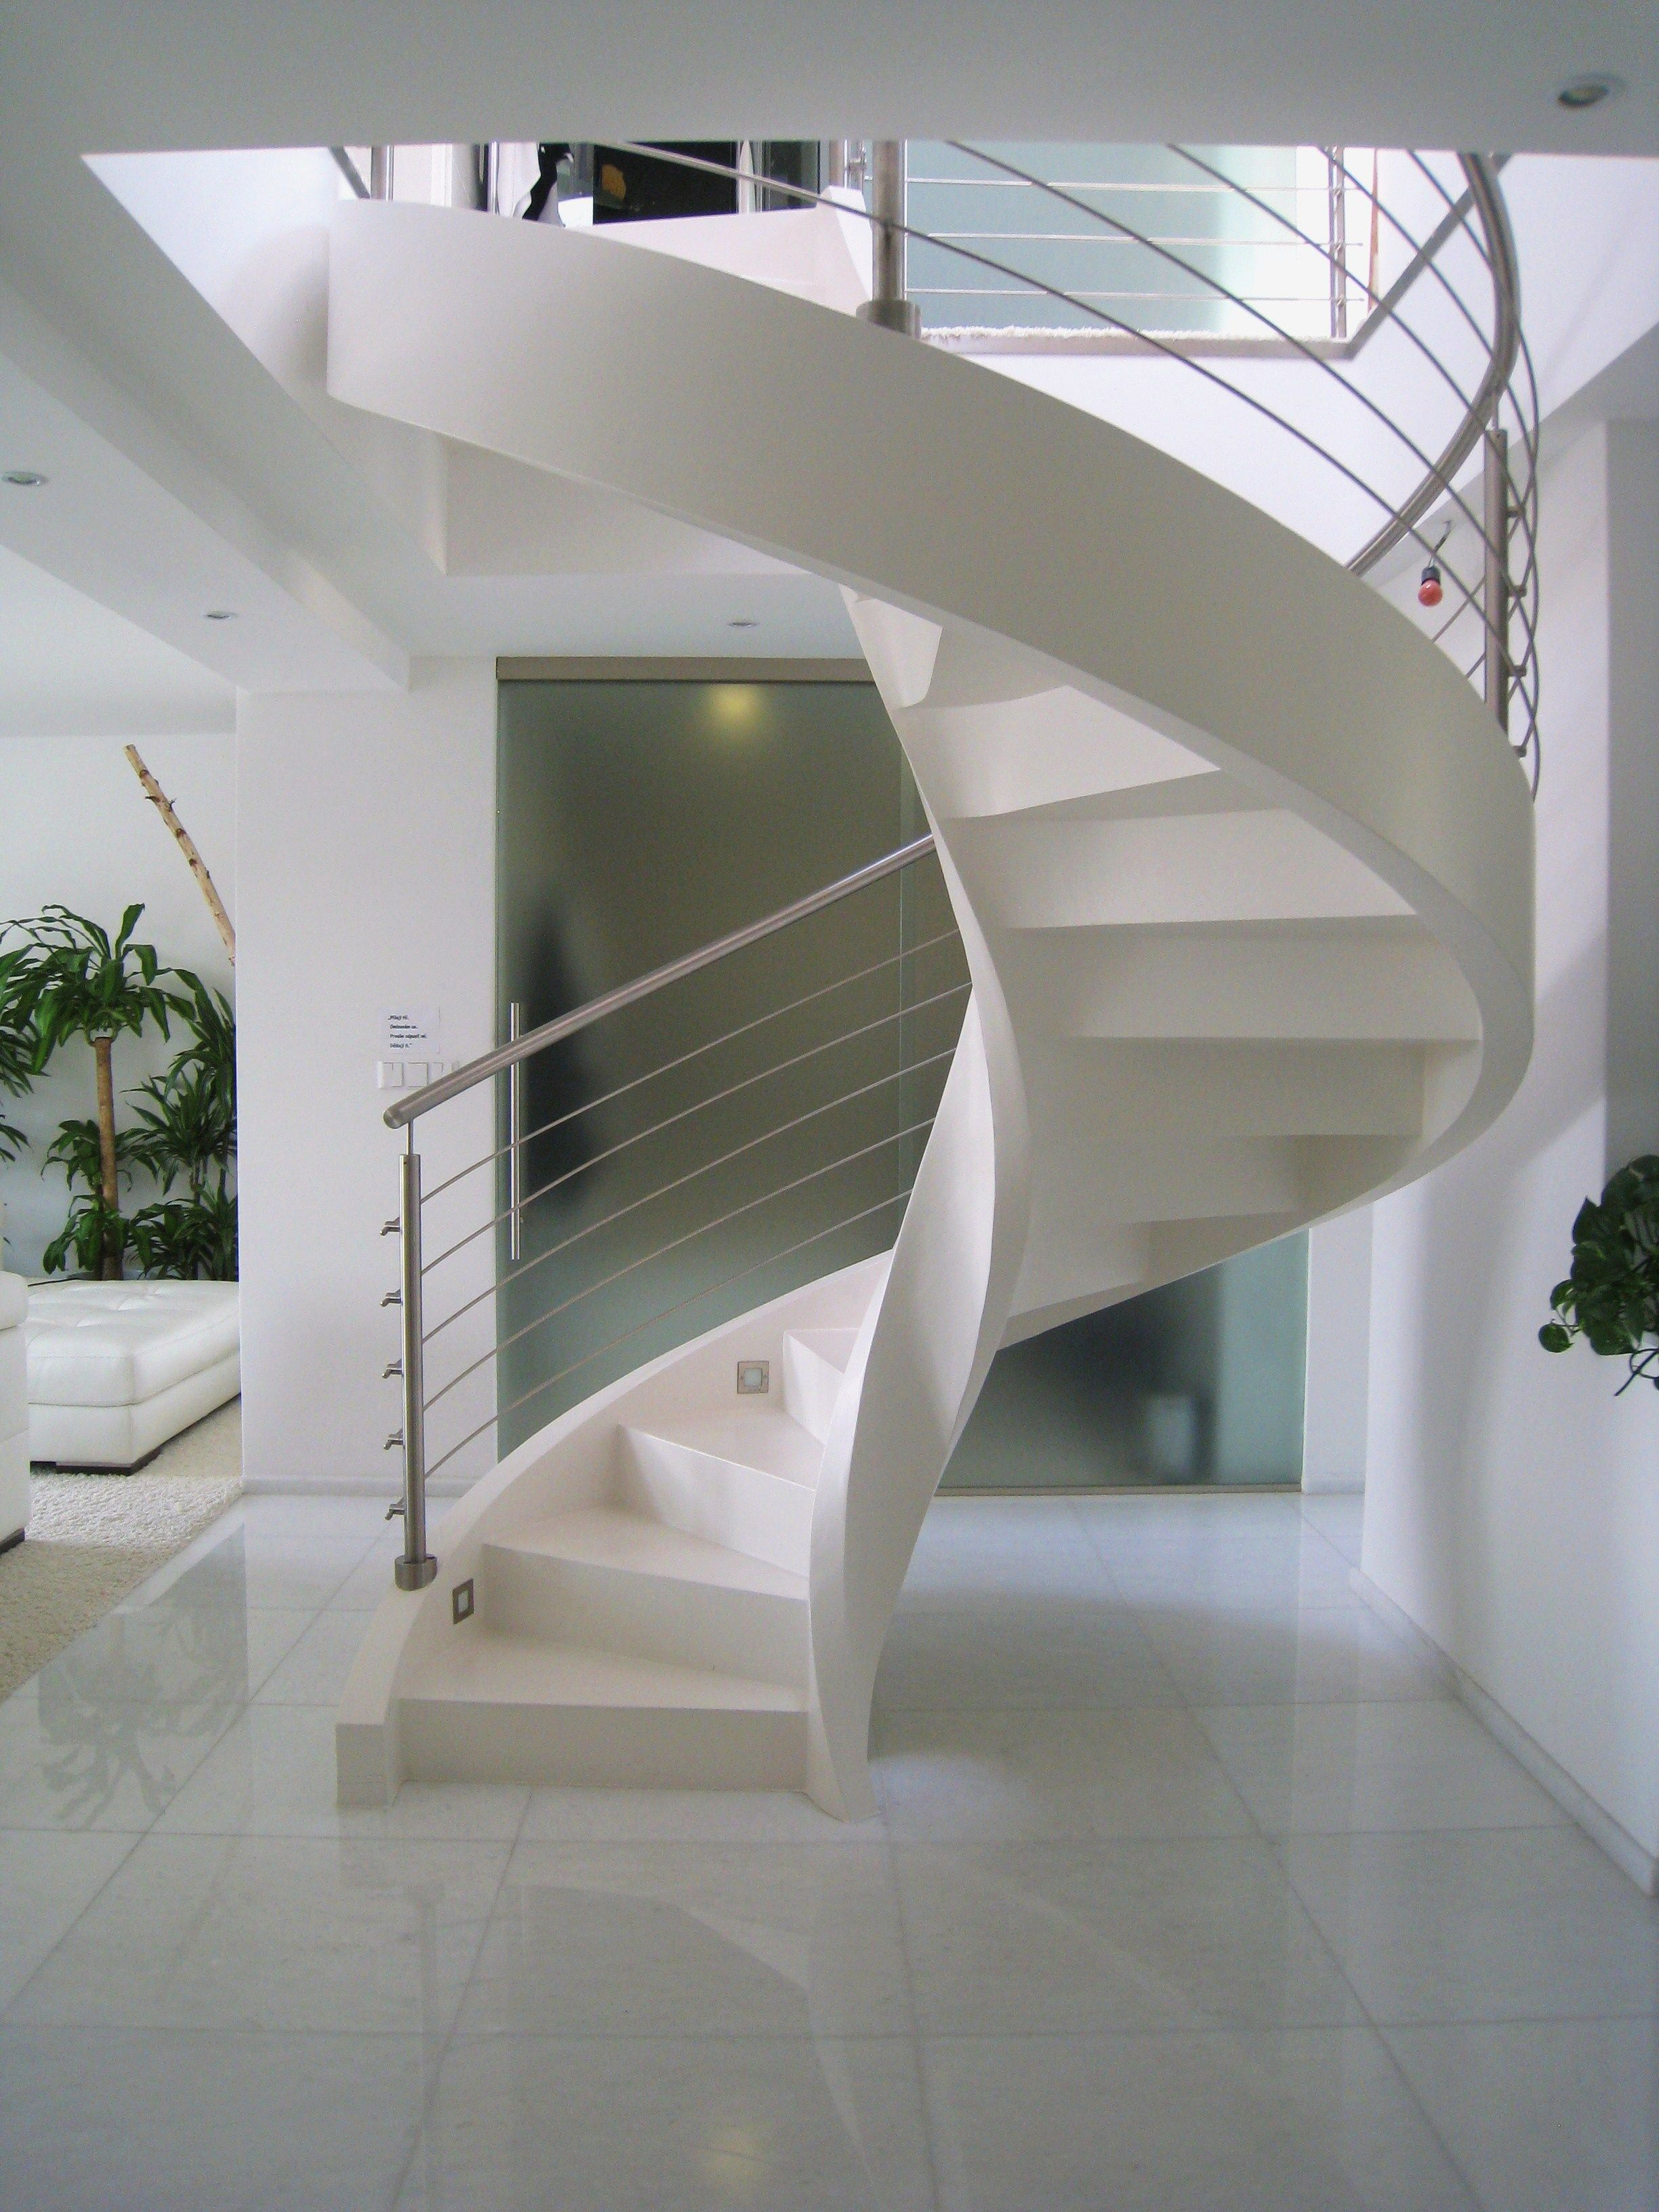 Concrete stairs dna design czech republic